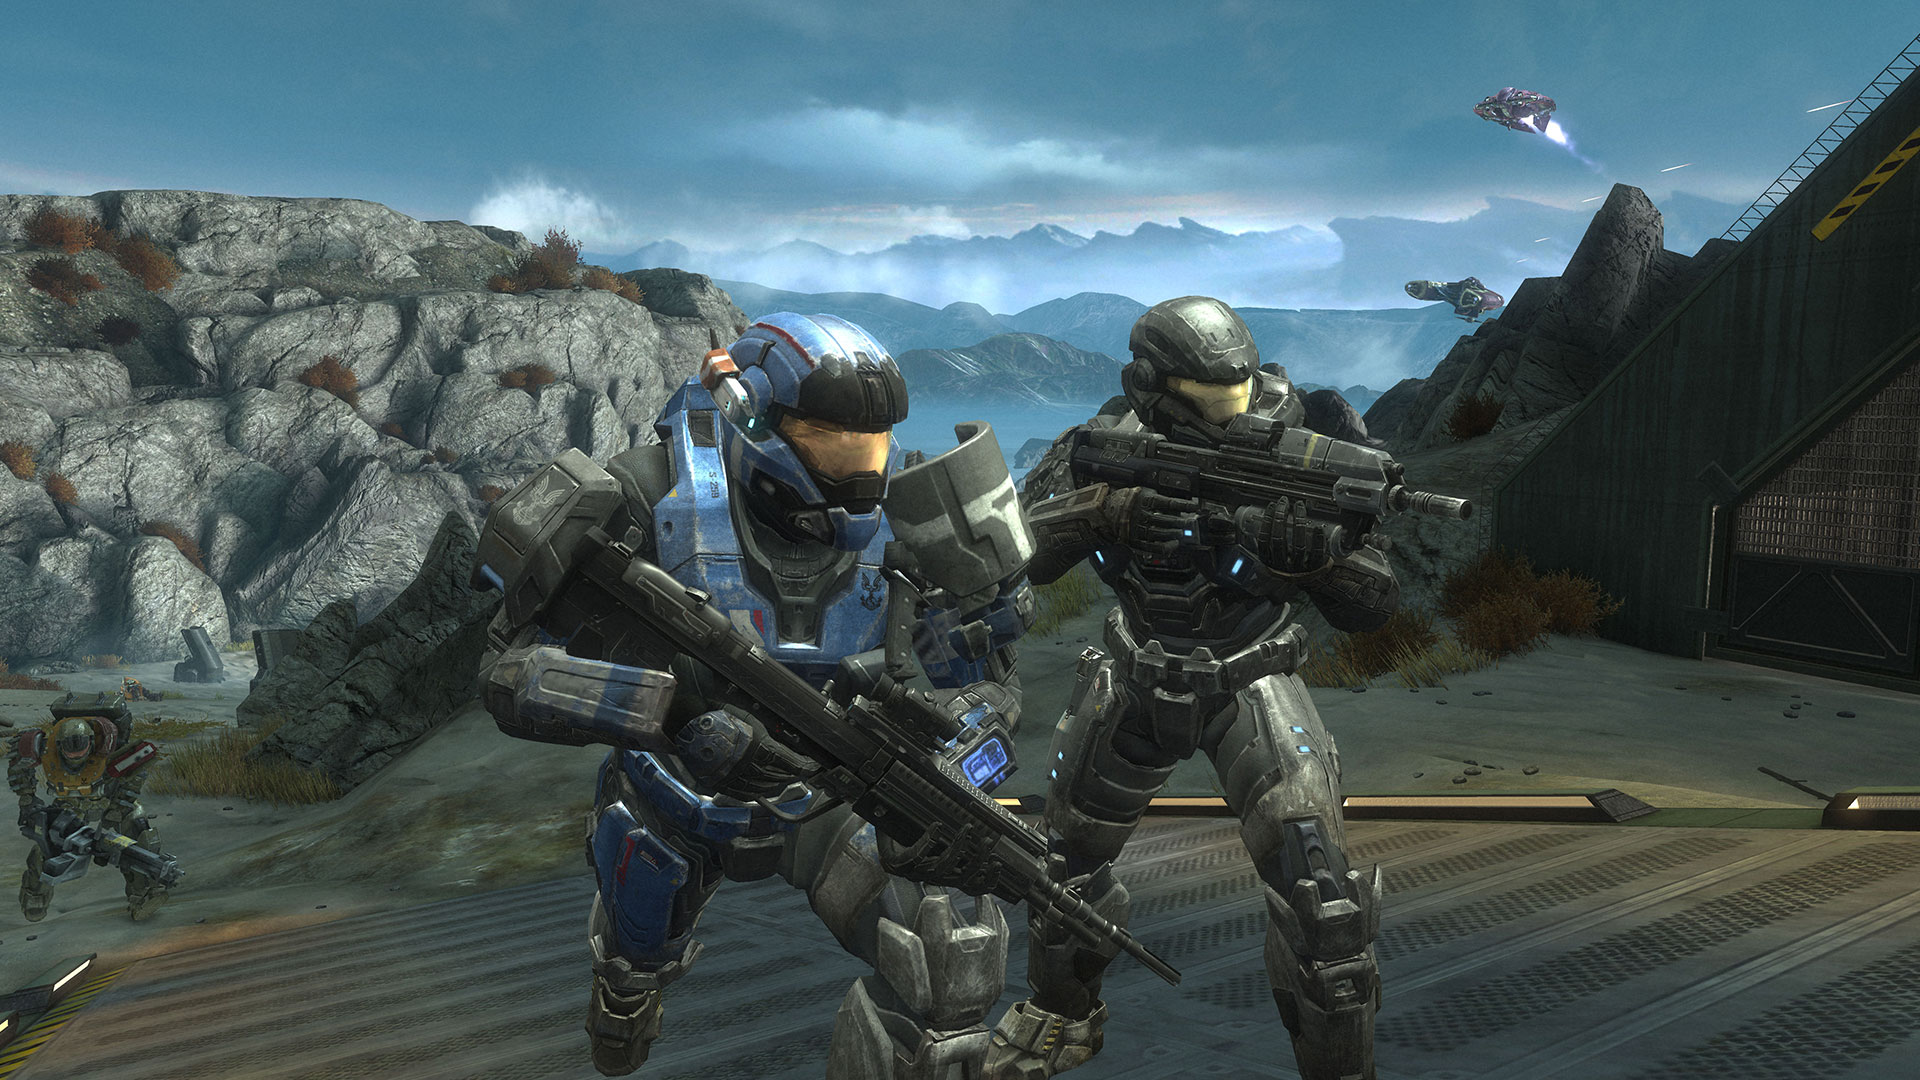 Here S Over 15 Minutes Of Halo Reach Gameplay On Pc At 4k